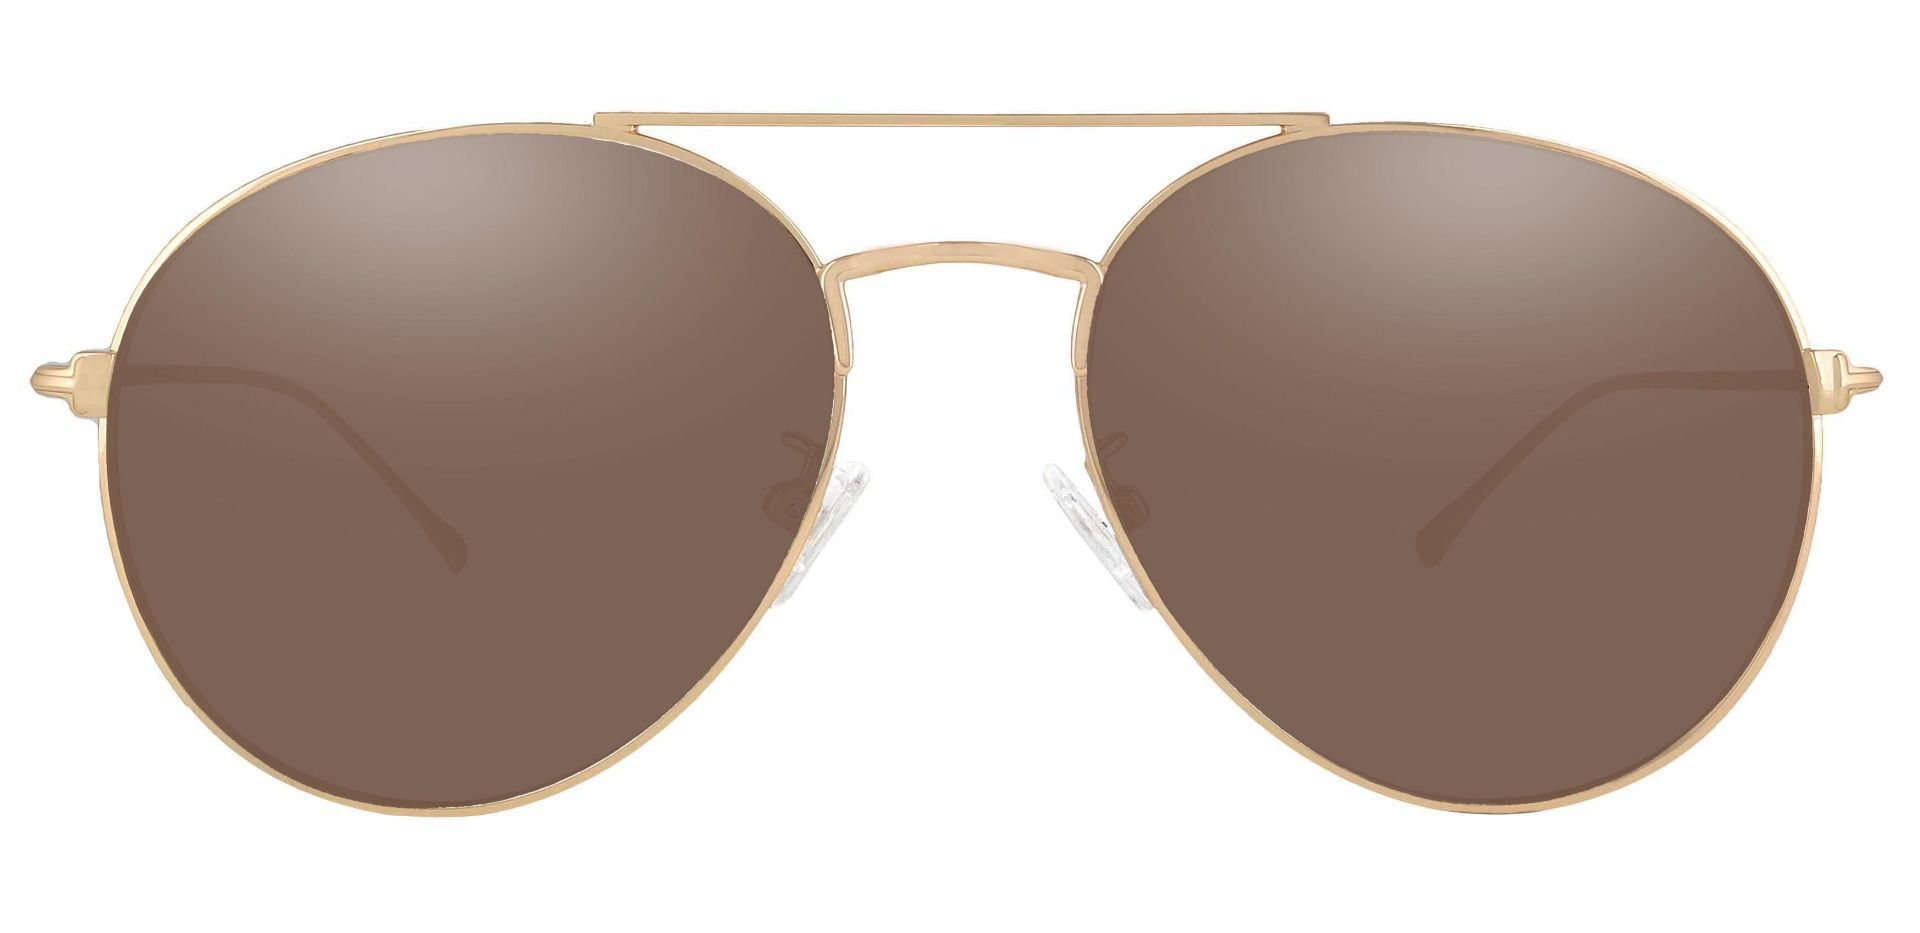 Canon Aviator Non-Rx Sunglasses - Gold Frame With Brown Lenses